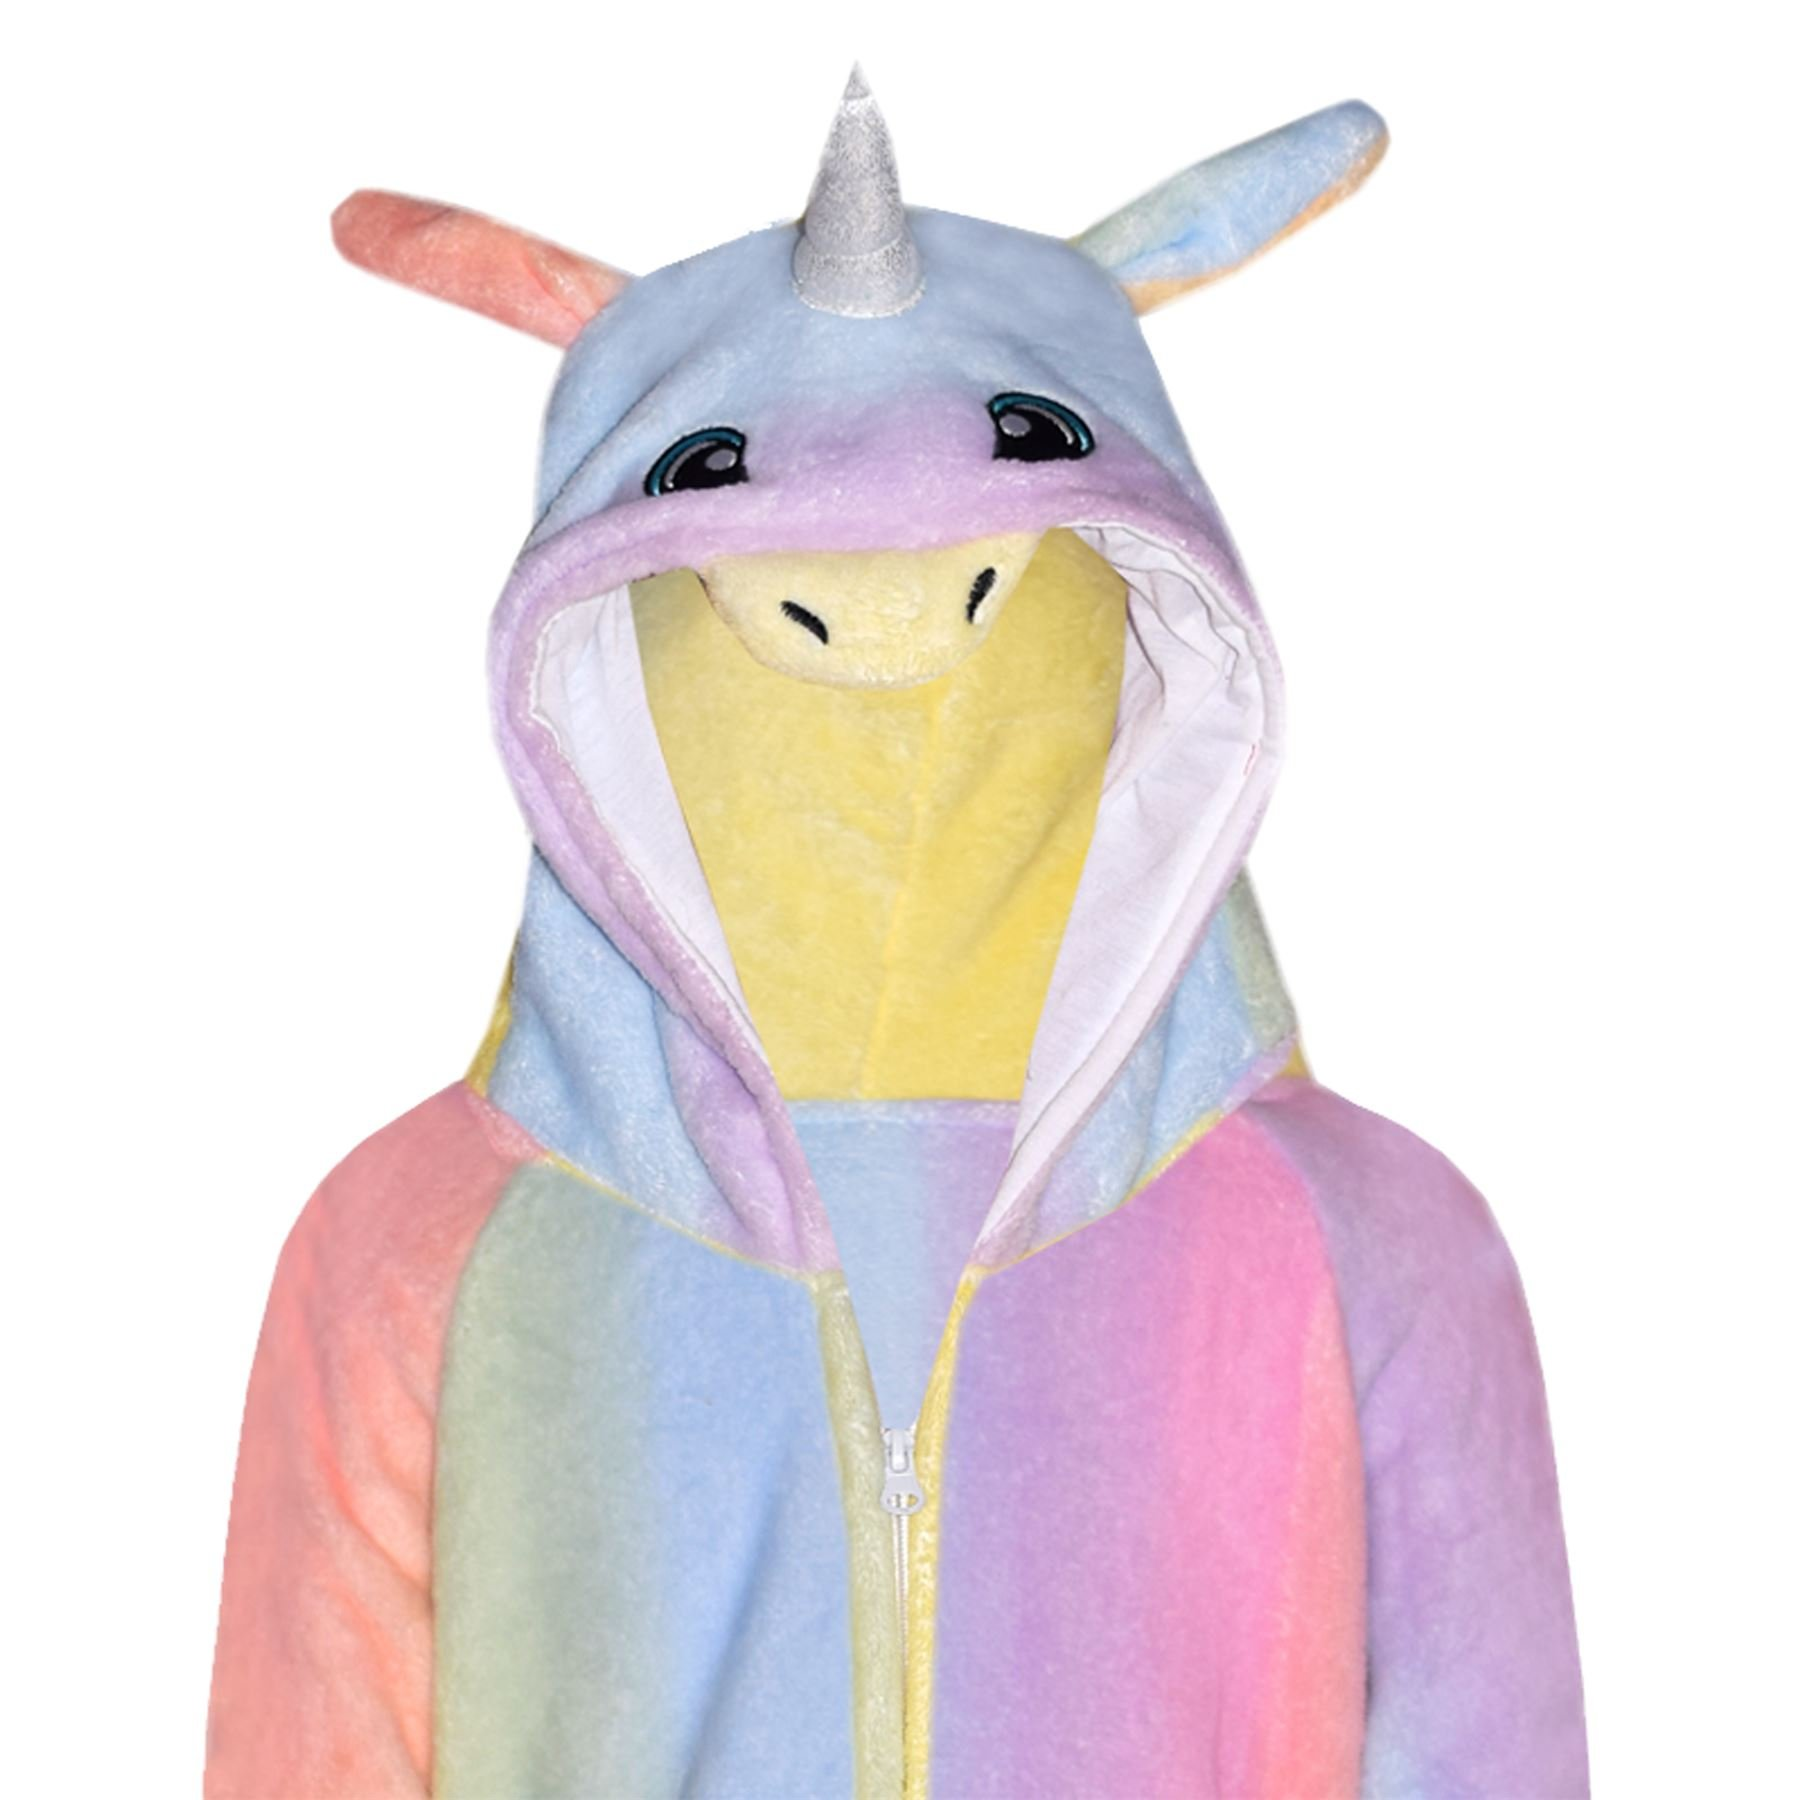 A2Z-4-Kids-Kids-Girls-Boys-Onesie-Extra-Soft-Fluffy-Unicorn-All-in-One-Rainbow-7-8-Years